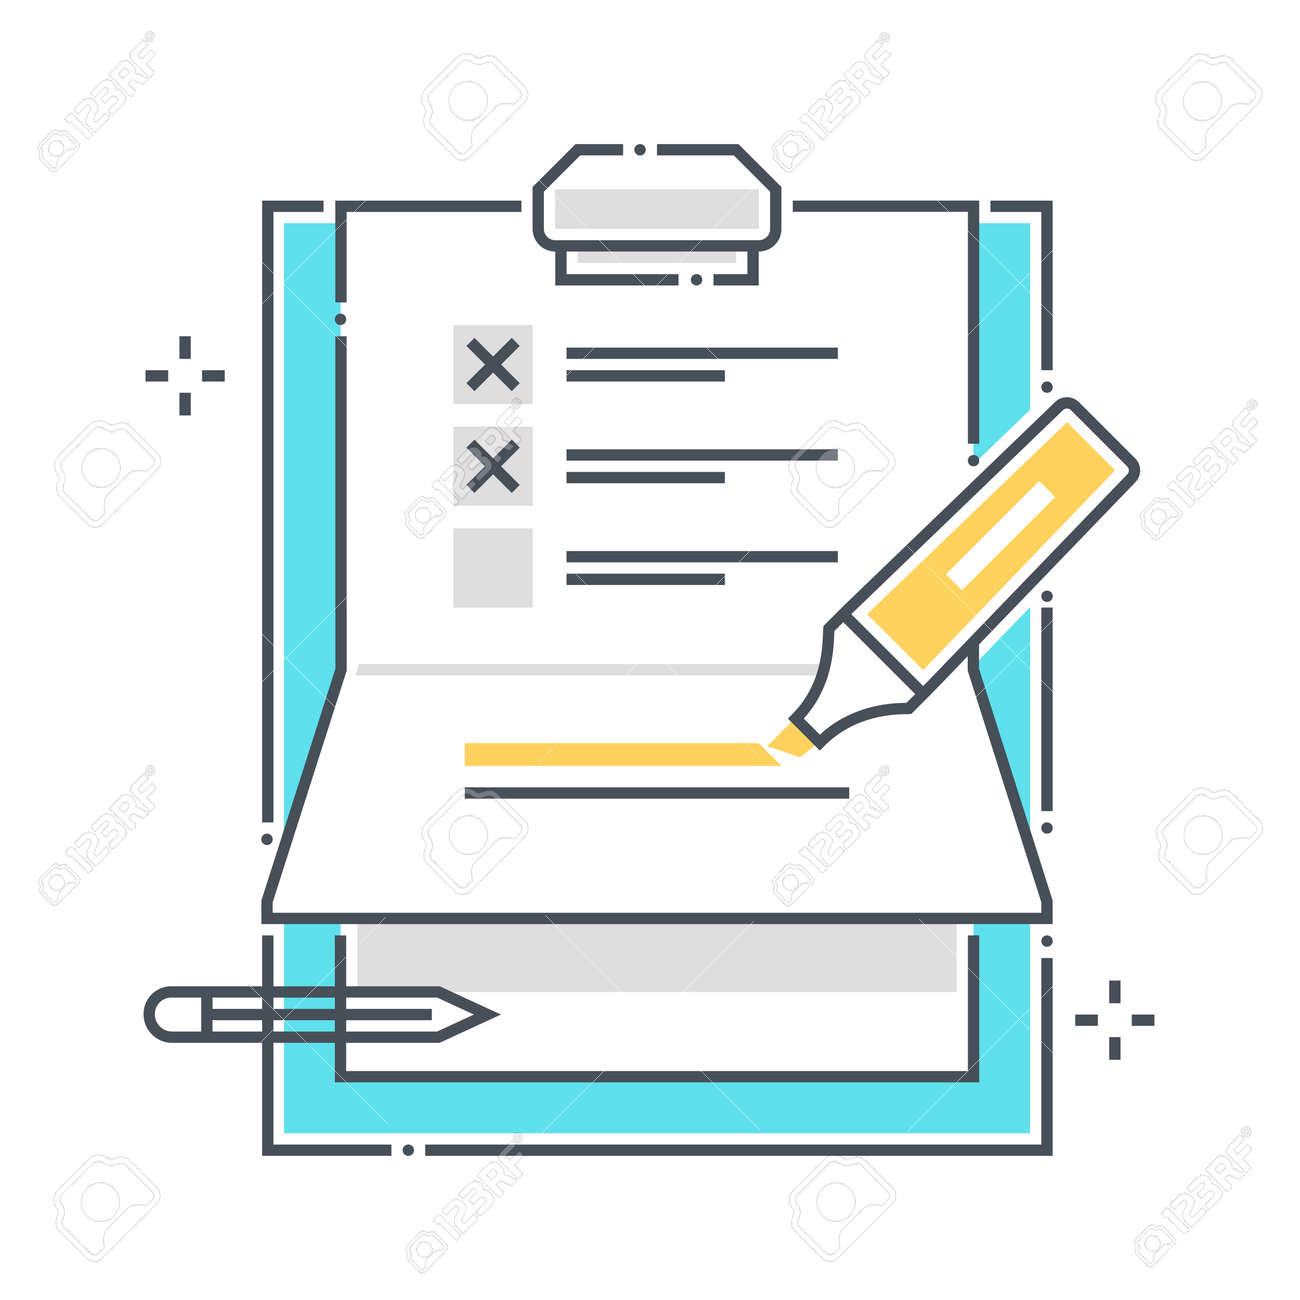 To do list related color line vector icon, illustration. The icon is about clipper, paper binder, pen, survey, marker. The composition is infinitely scalable. - 163698168